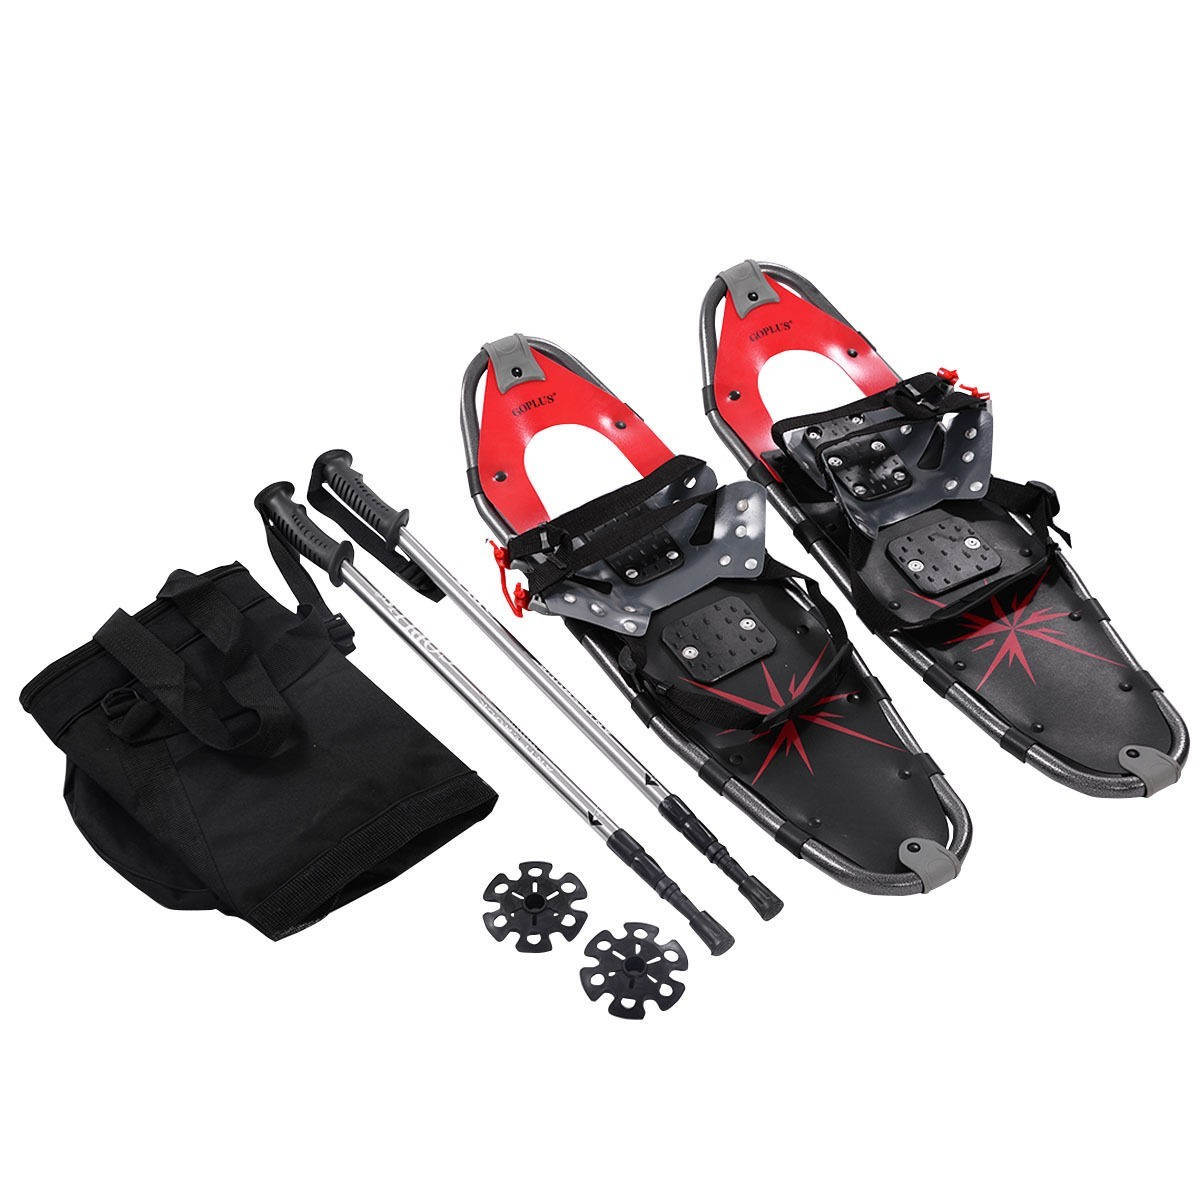 All Terrain Sports Snowshoes + Walking Poles + Free Carrying Bag